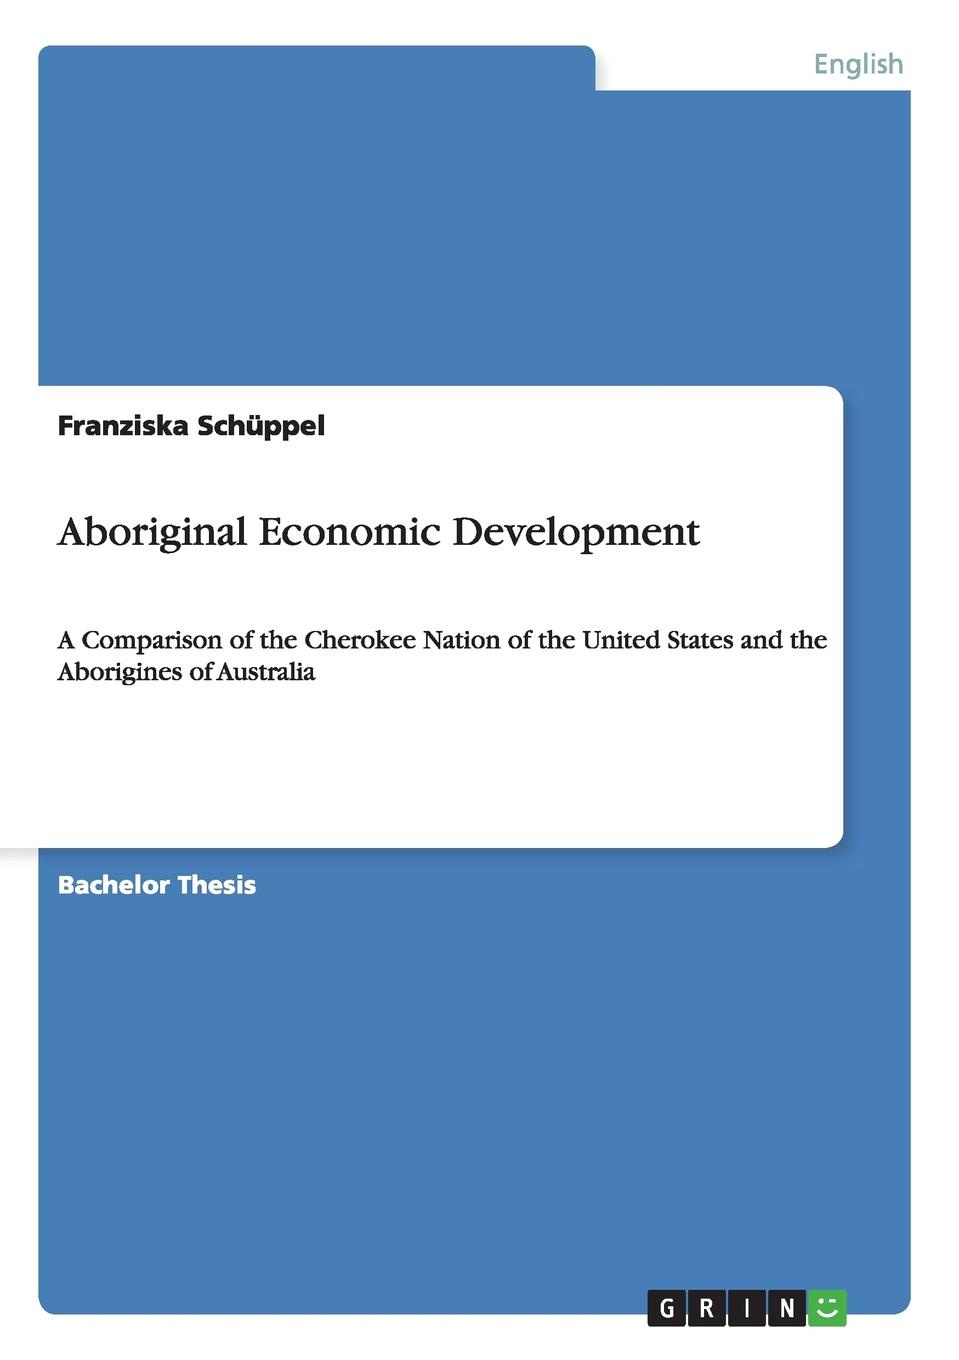 Franziska Schüppel Aboriginal Economic Development printer park hill cherokee john candy the constitution and laws of the choctaw nation 1840